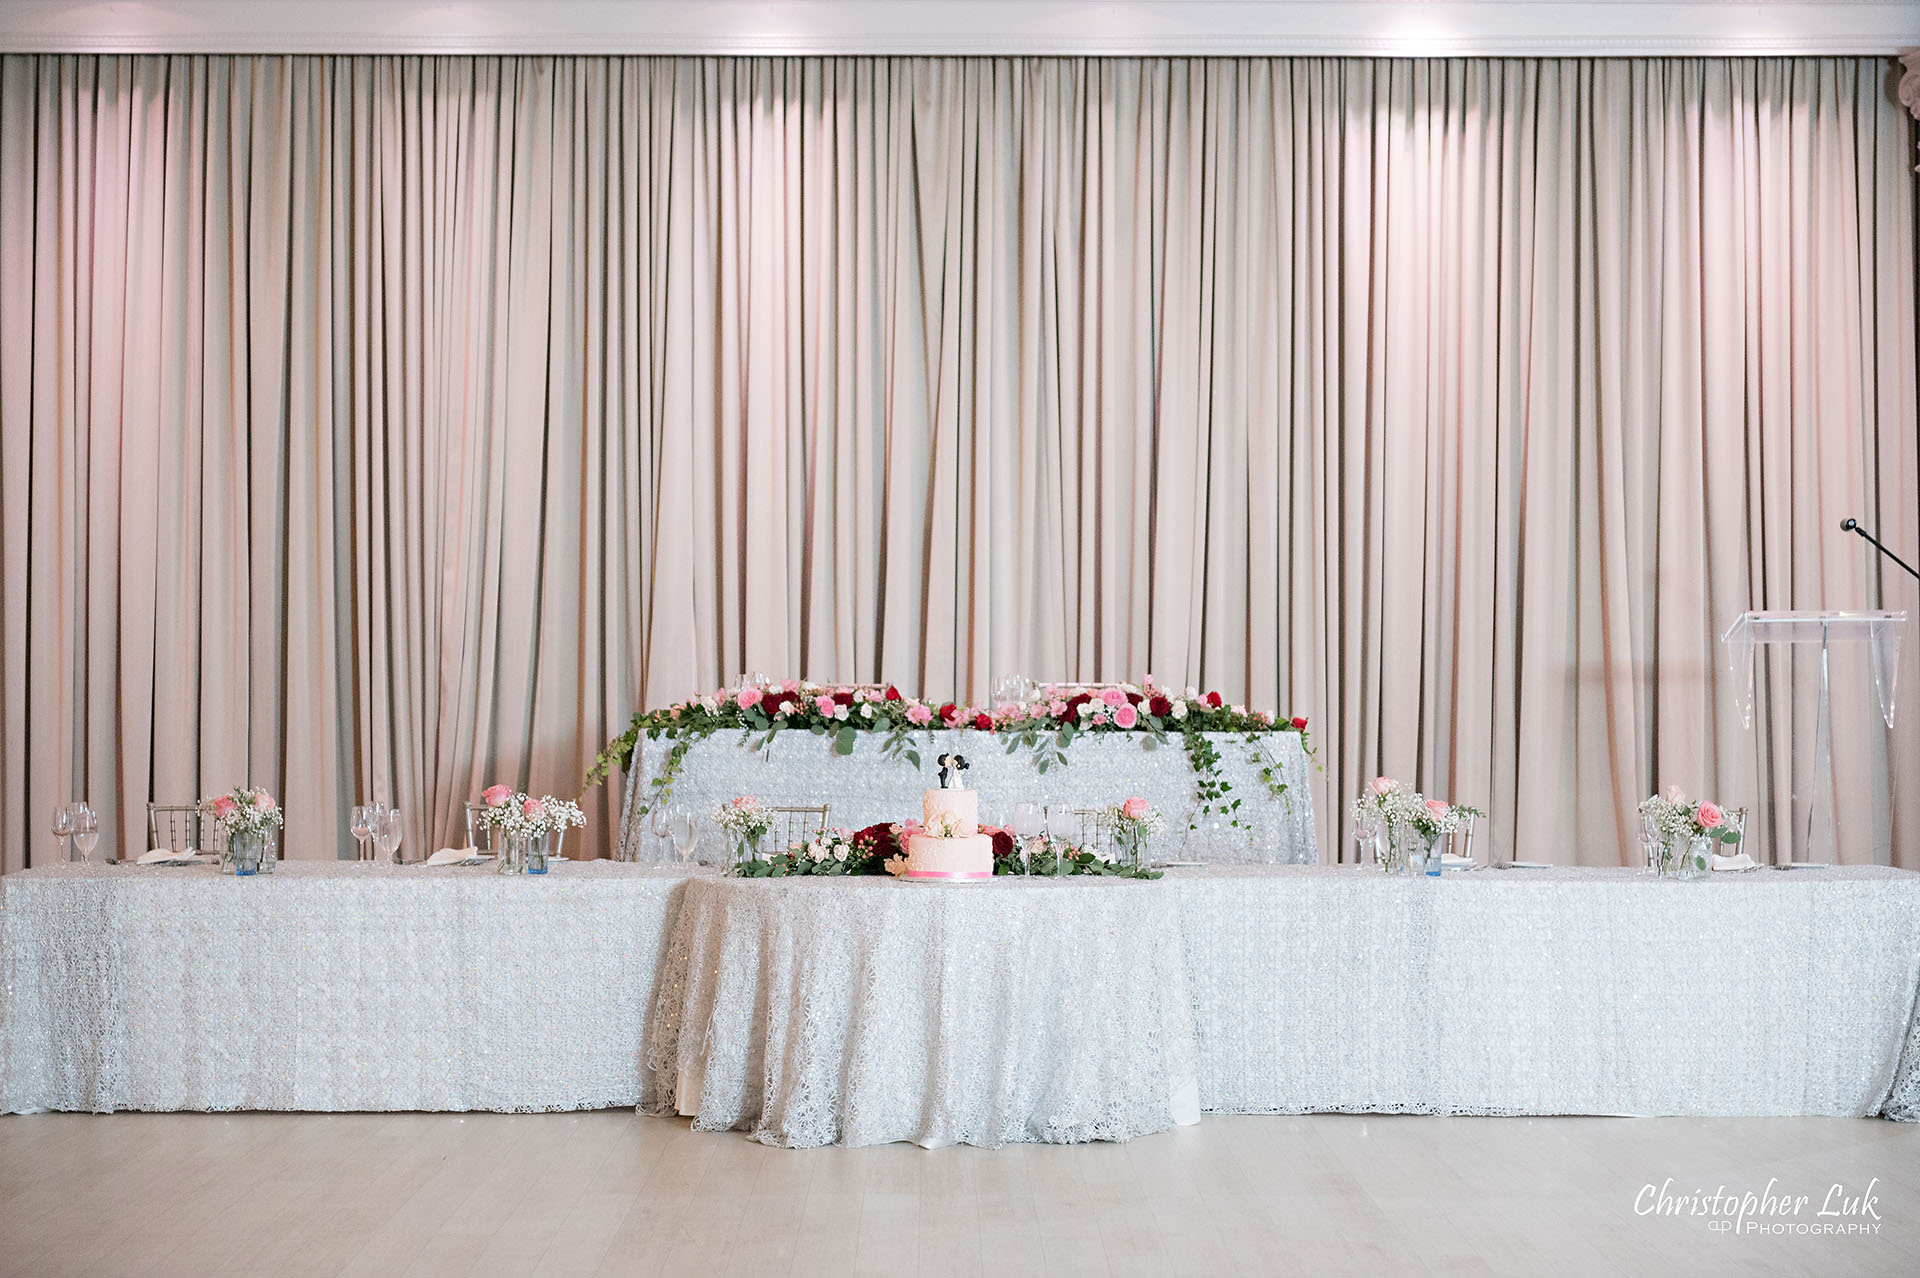 Christopher Luk Toronto Wedding Photographer Bridle Trail Baptist Church Unionville Main Street Crystal Fountain Event Venue Head Table Decor Flower Bell by Masami Crystal Linen Setup Wide Stage Curtains